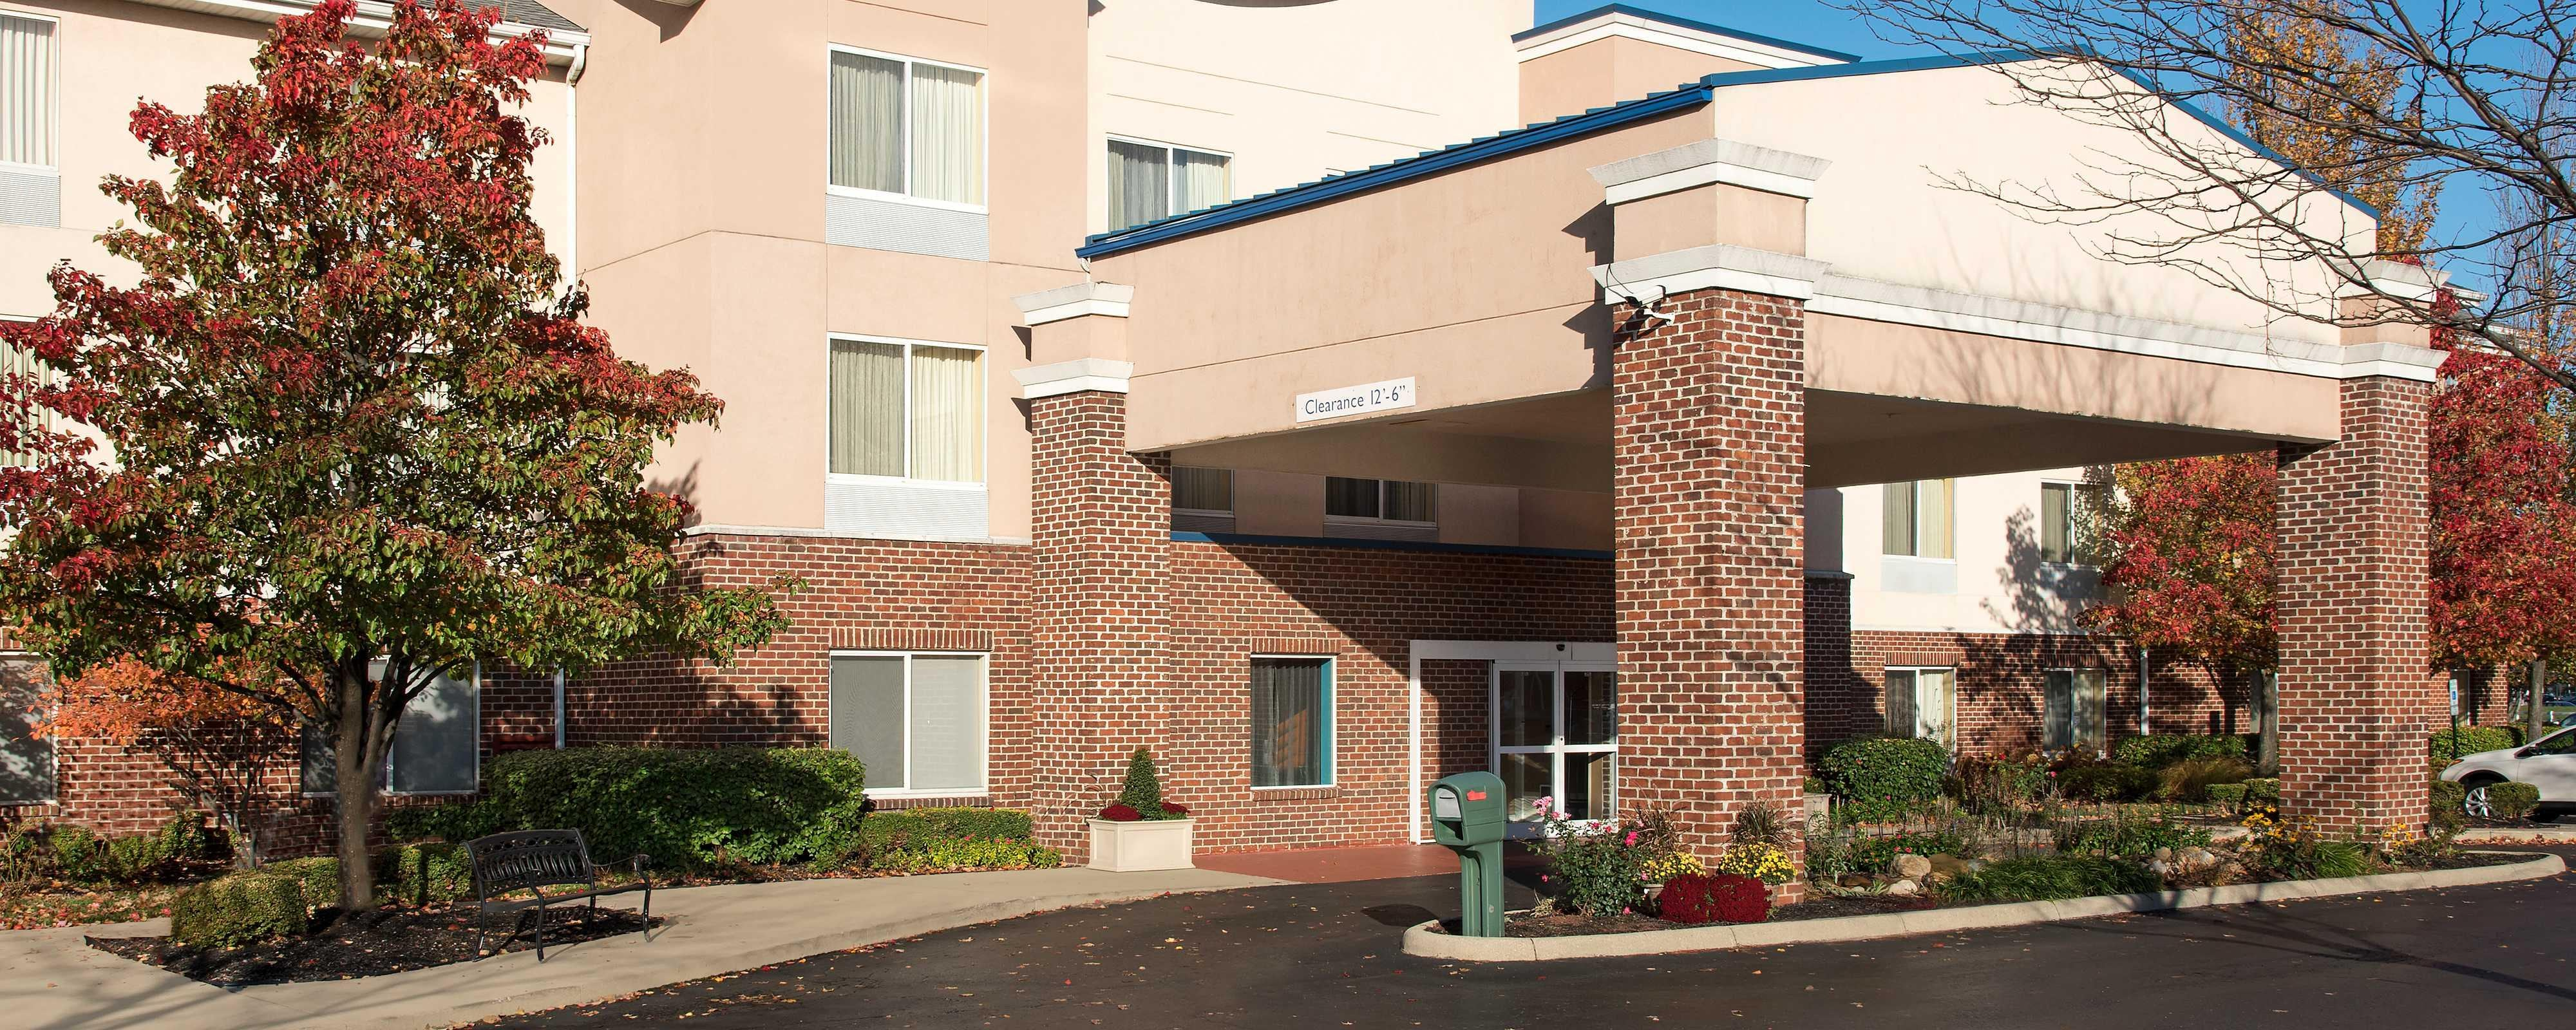 Extérieur du Fairfield Inn & Suites Columbus East